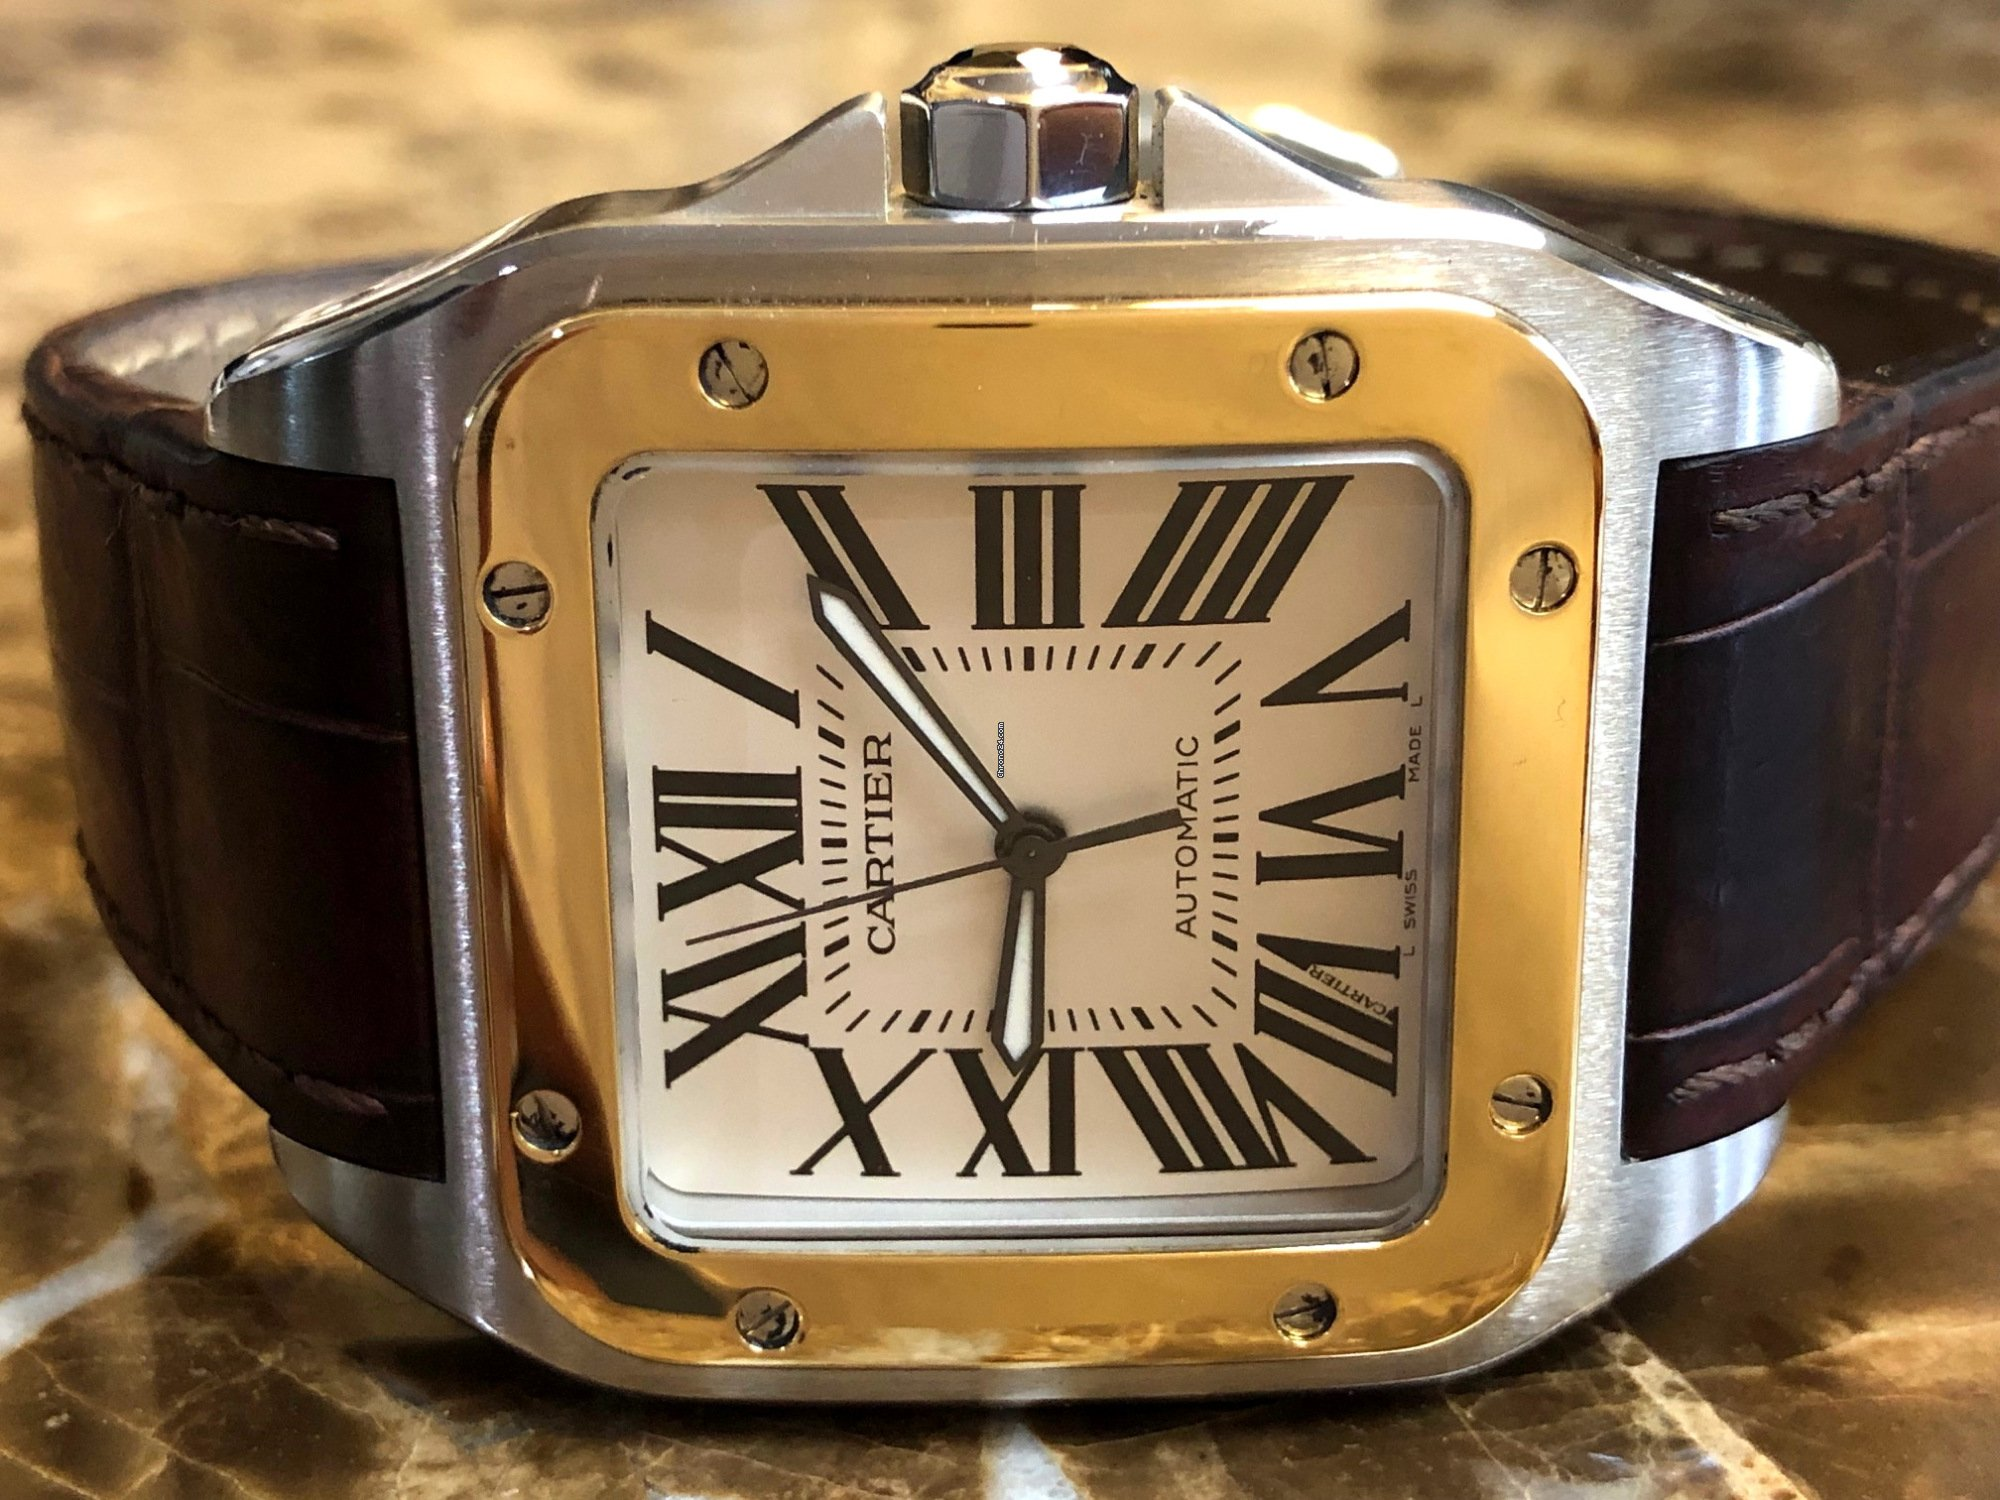 841cd1543428a Cartier Santos 100 XL 18k Yellow Gold and Steel for $5,490 for sale ...